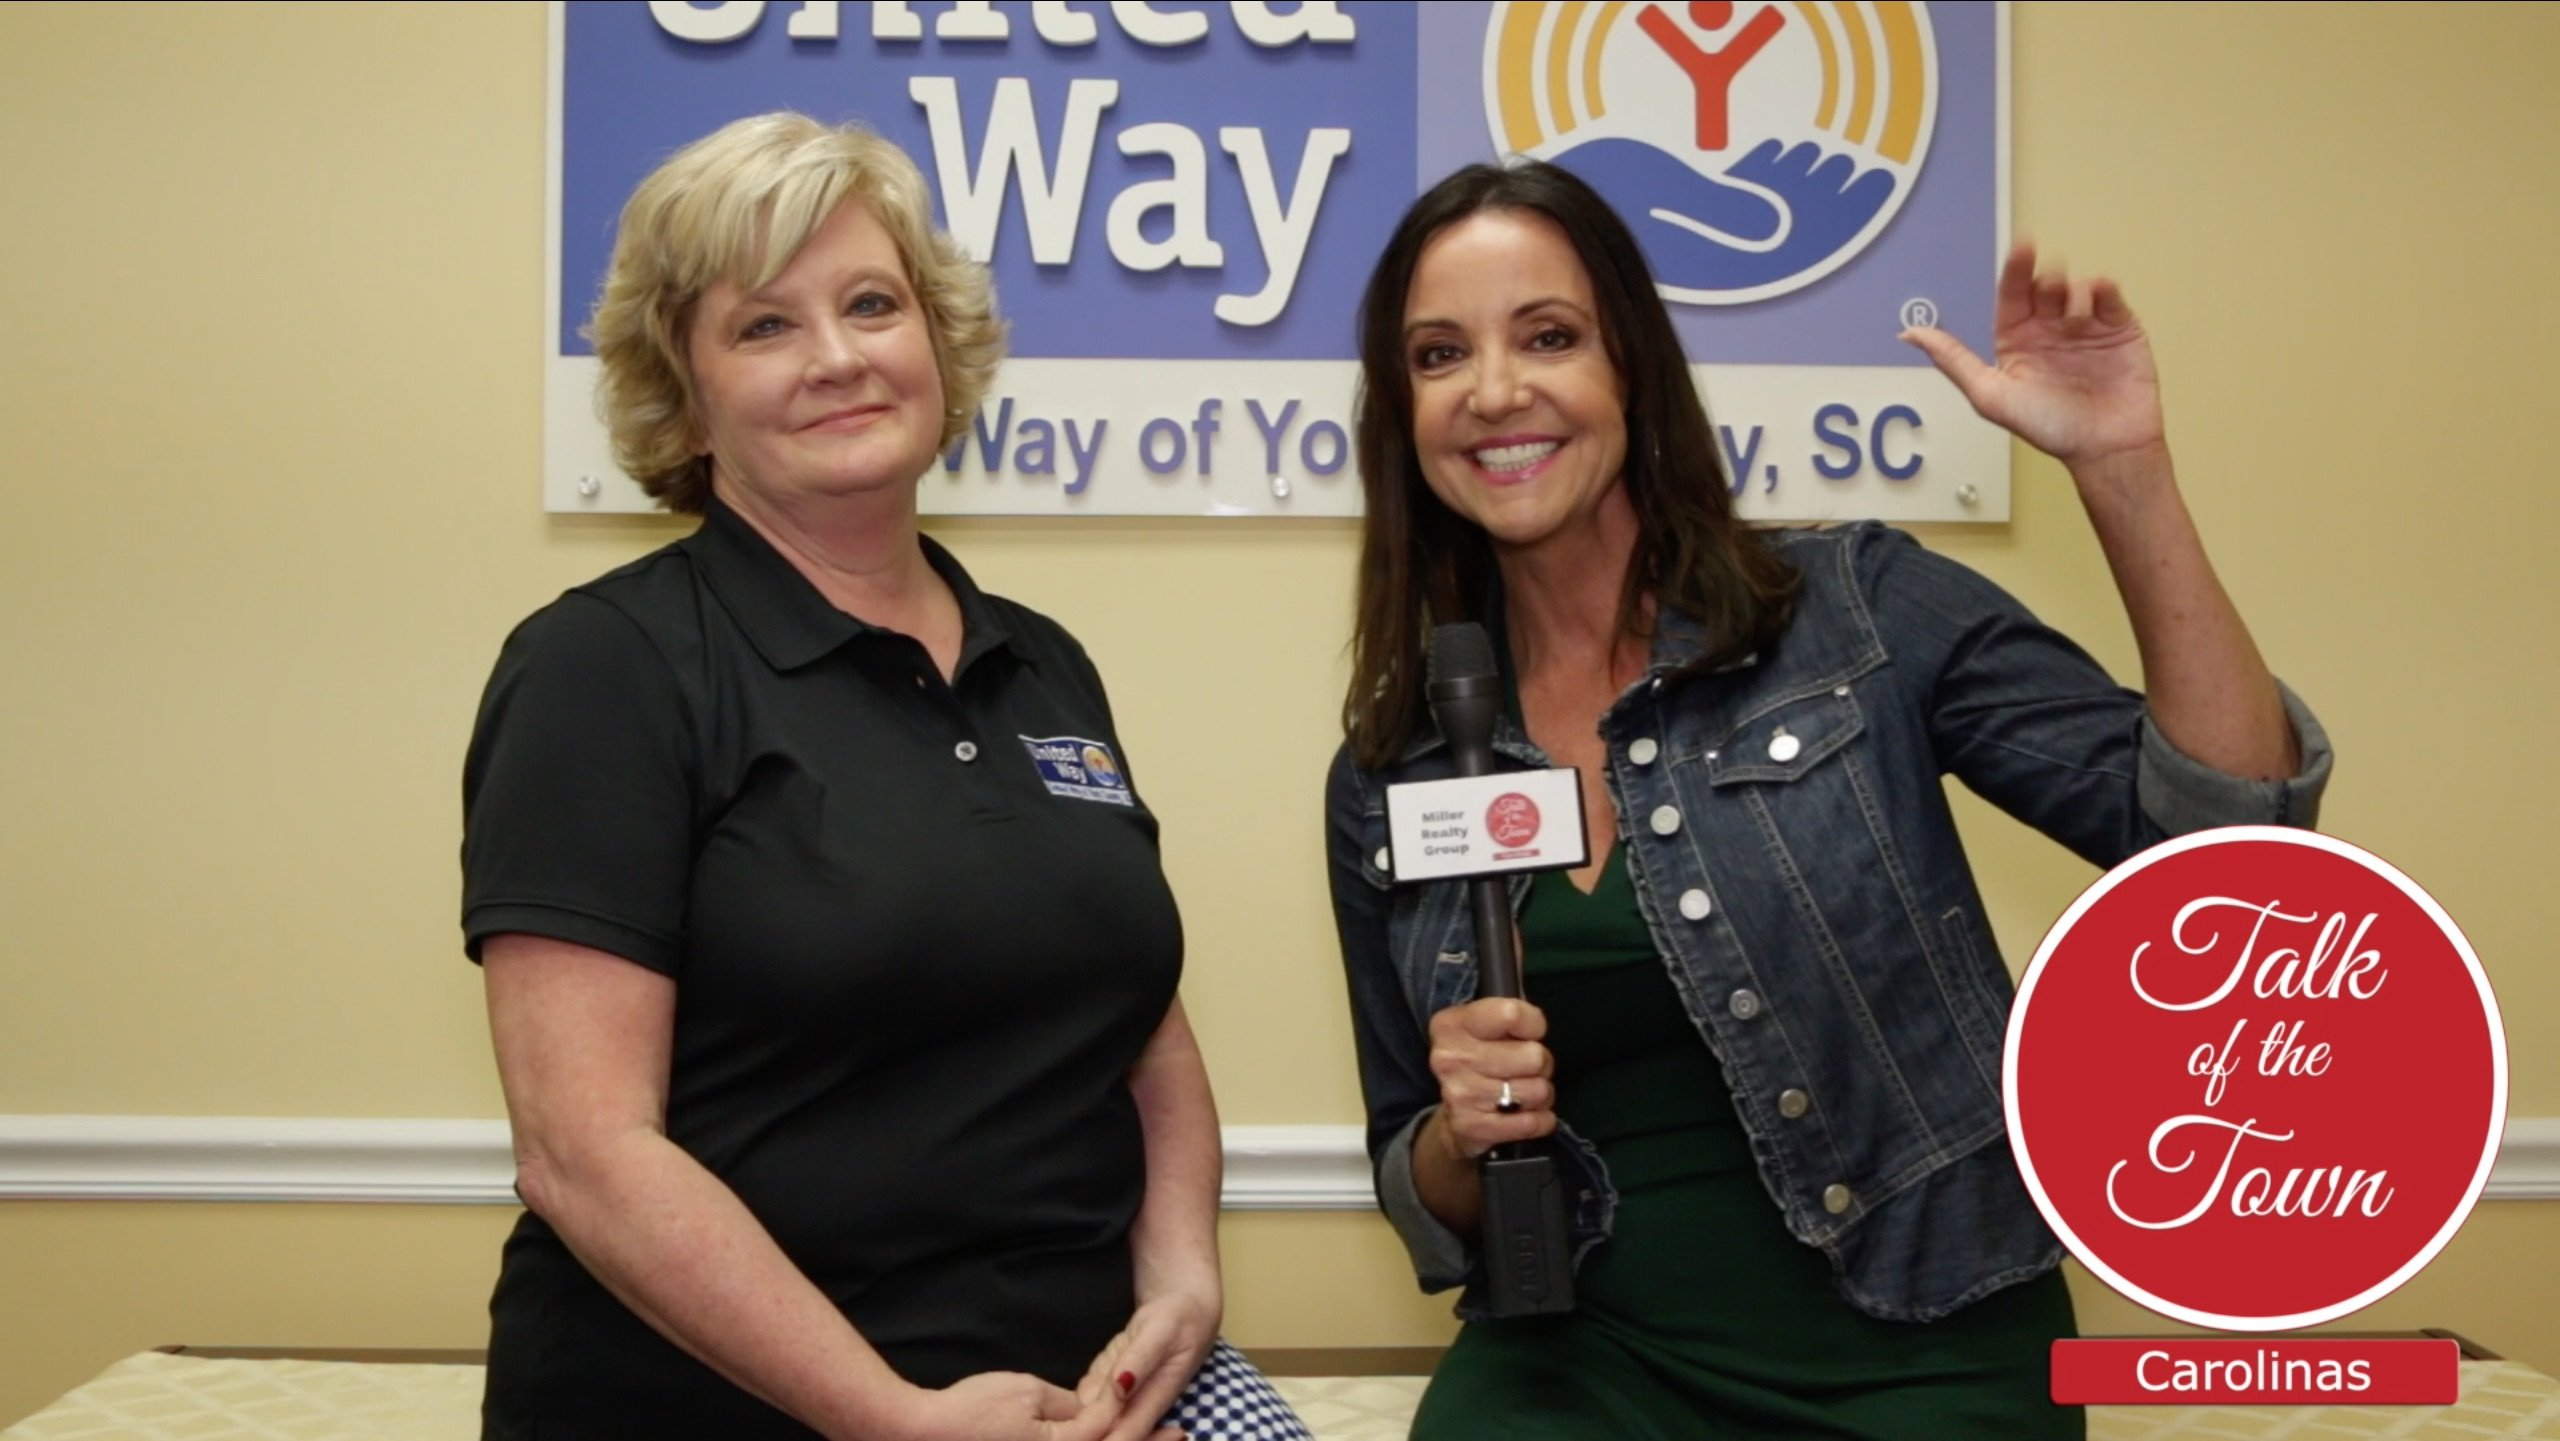 United Way of York County Hurricane Florence Recovery Fund